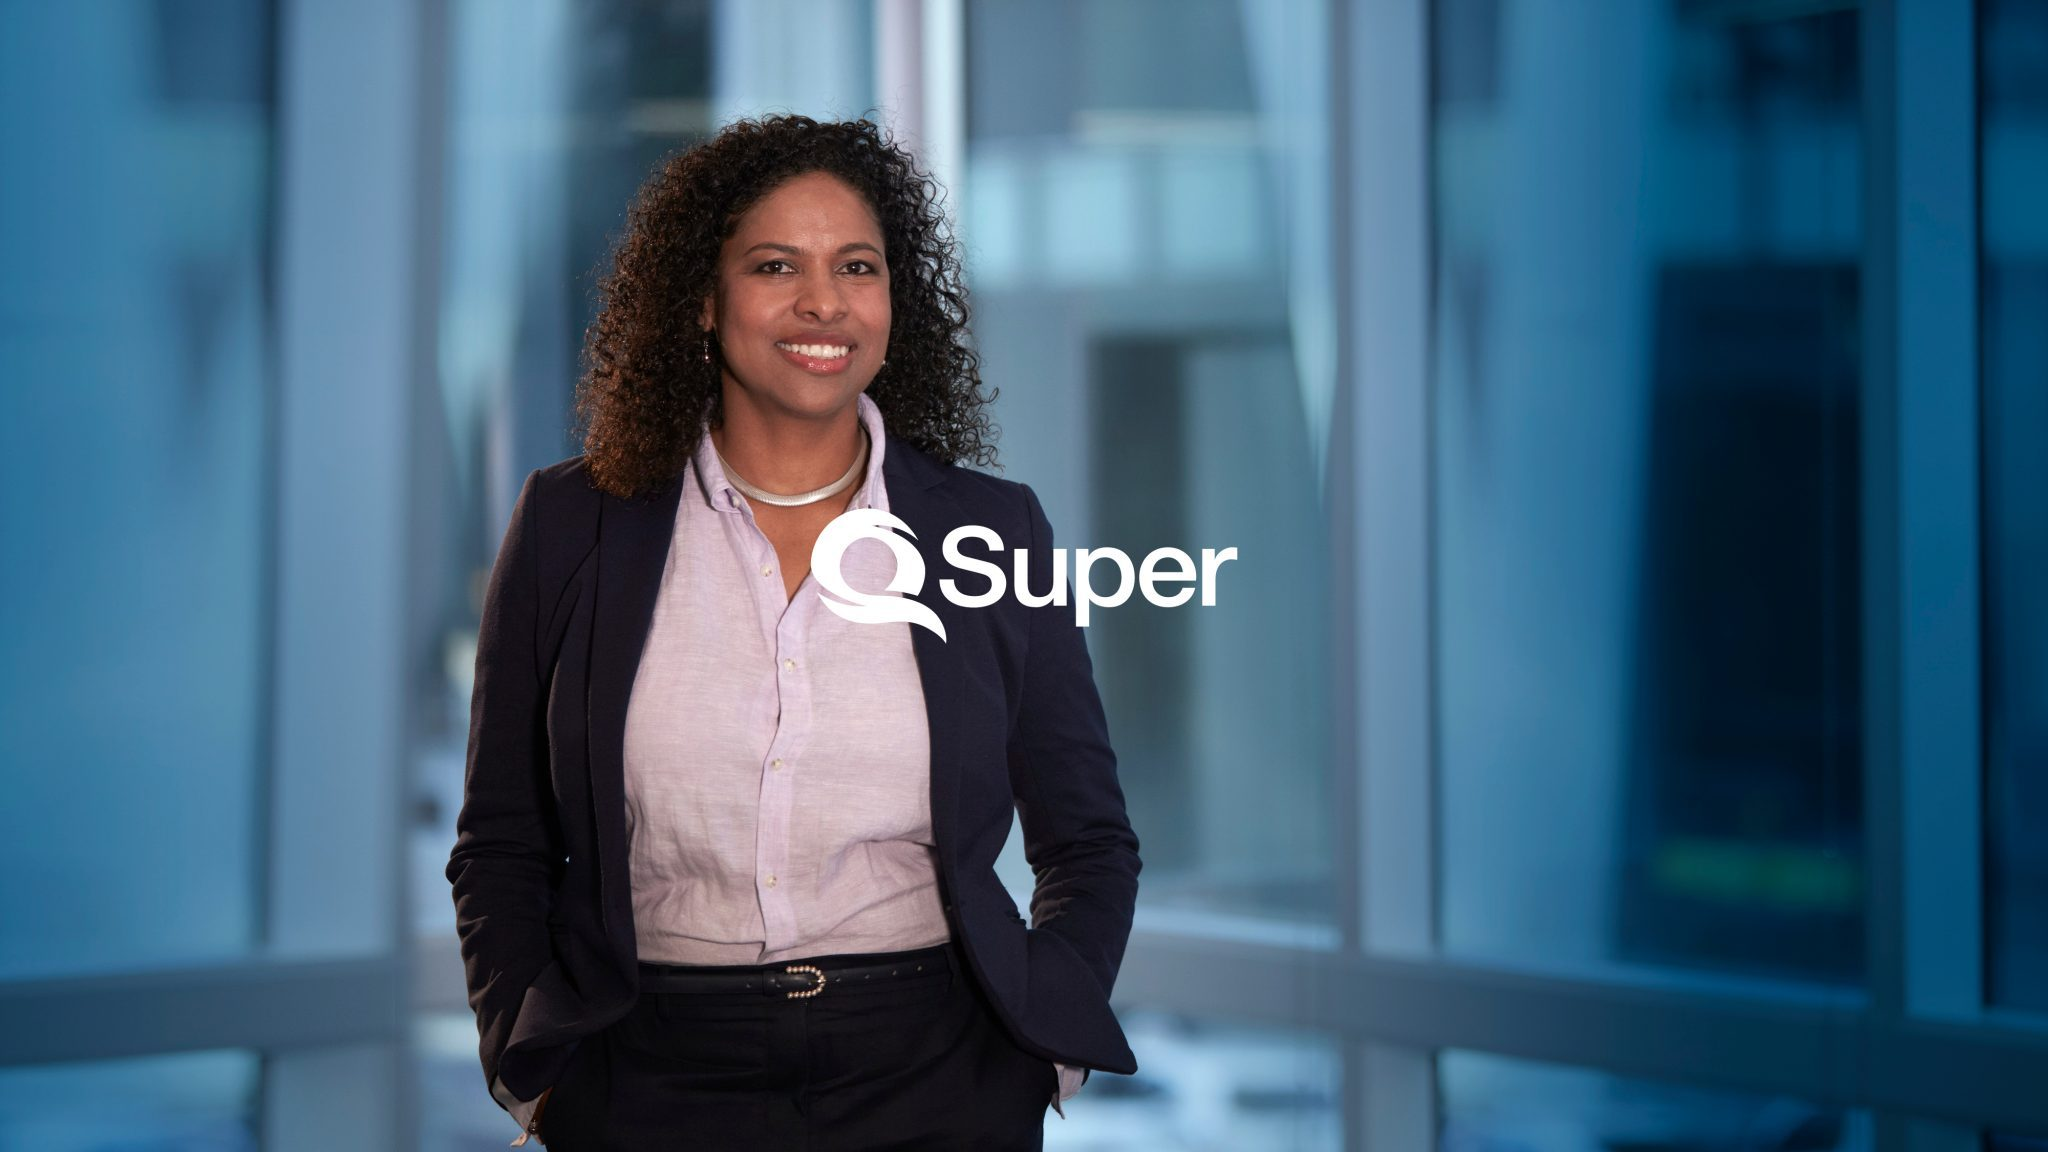 Alike Agency developed an Employee Value Proposition to help QSuper attract and retain the best talent.